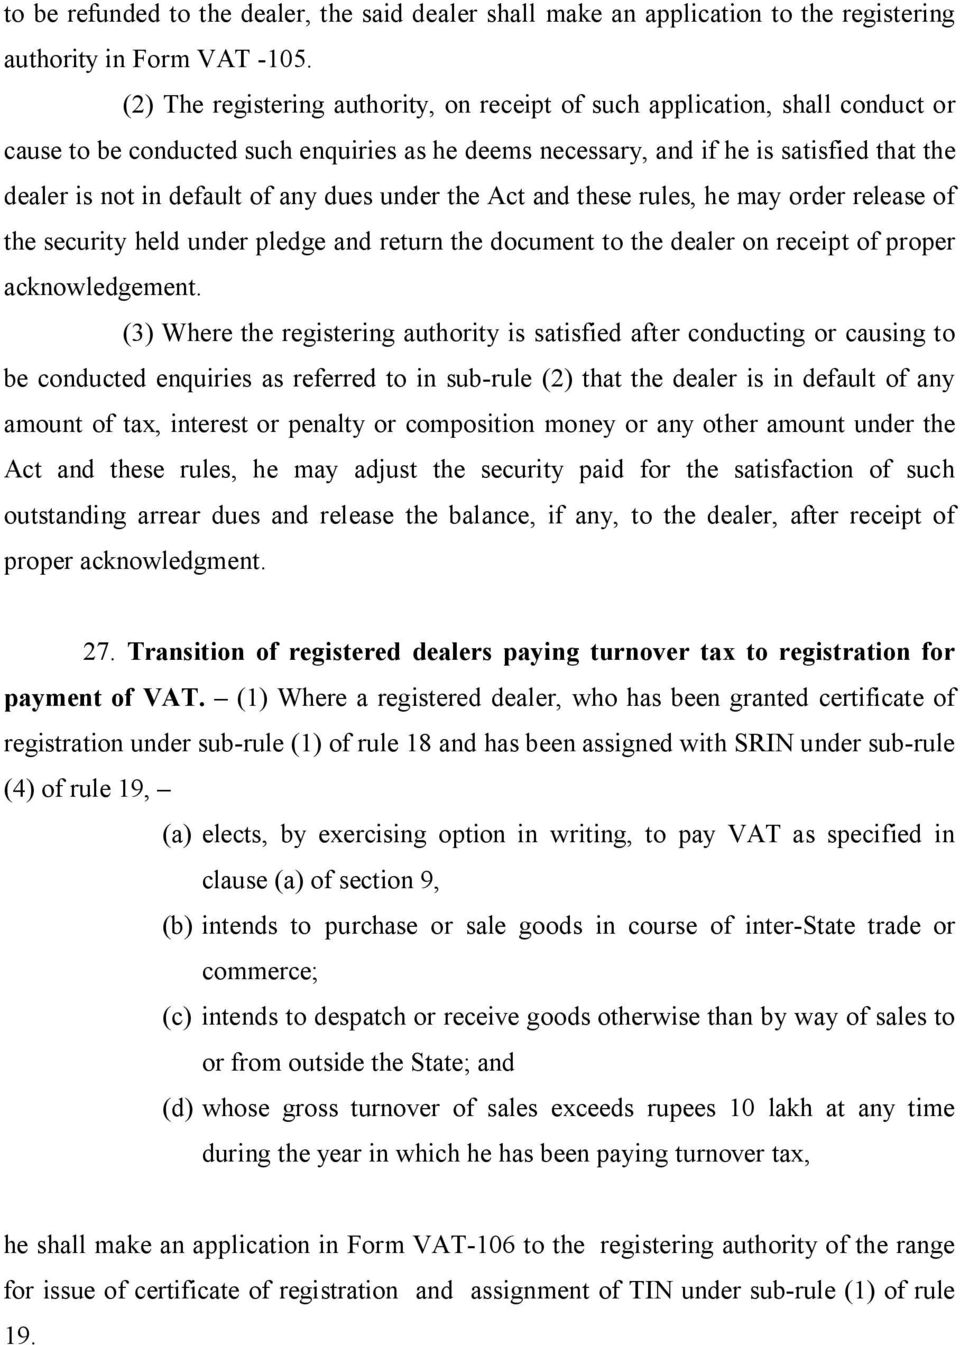 any dues under the Act and these rules, he may order release of the security held under pledge and return the document to the dealer on receipt of proper acknowledgement.